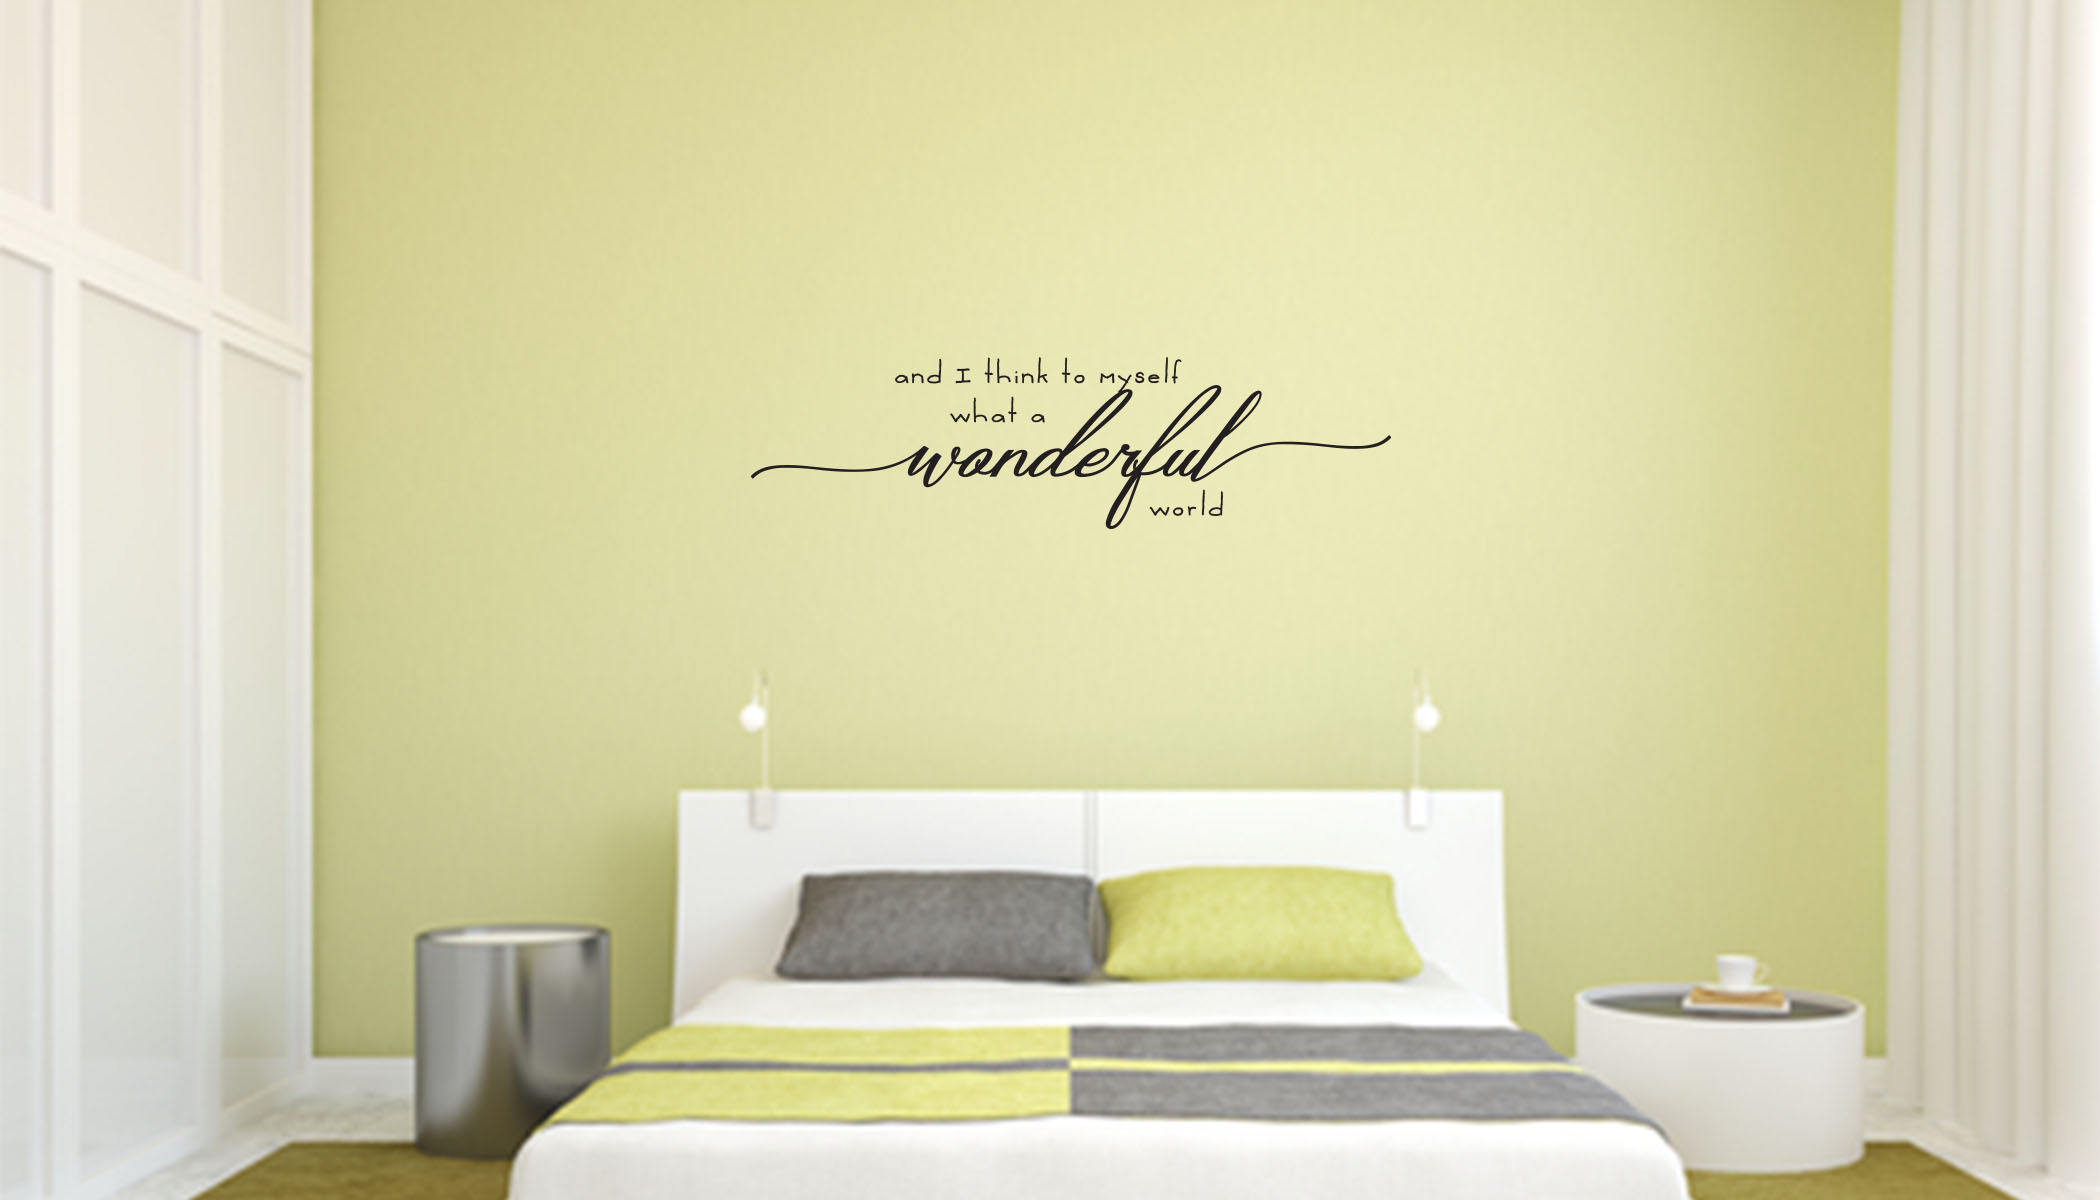 And I Think To Myself What A Wonderful World Wall Decal - Home, Bedroom,  Living Room Decor with regard to Wonderful World Wall Decor (Image 2 of 30)